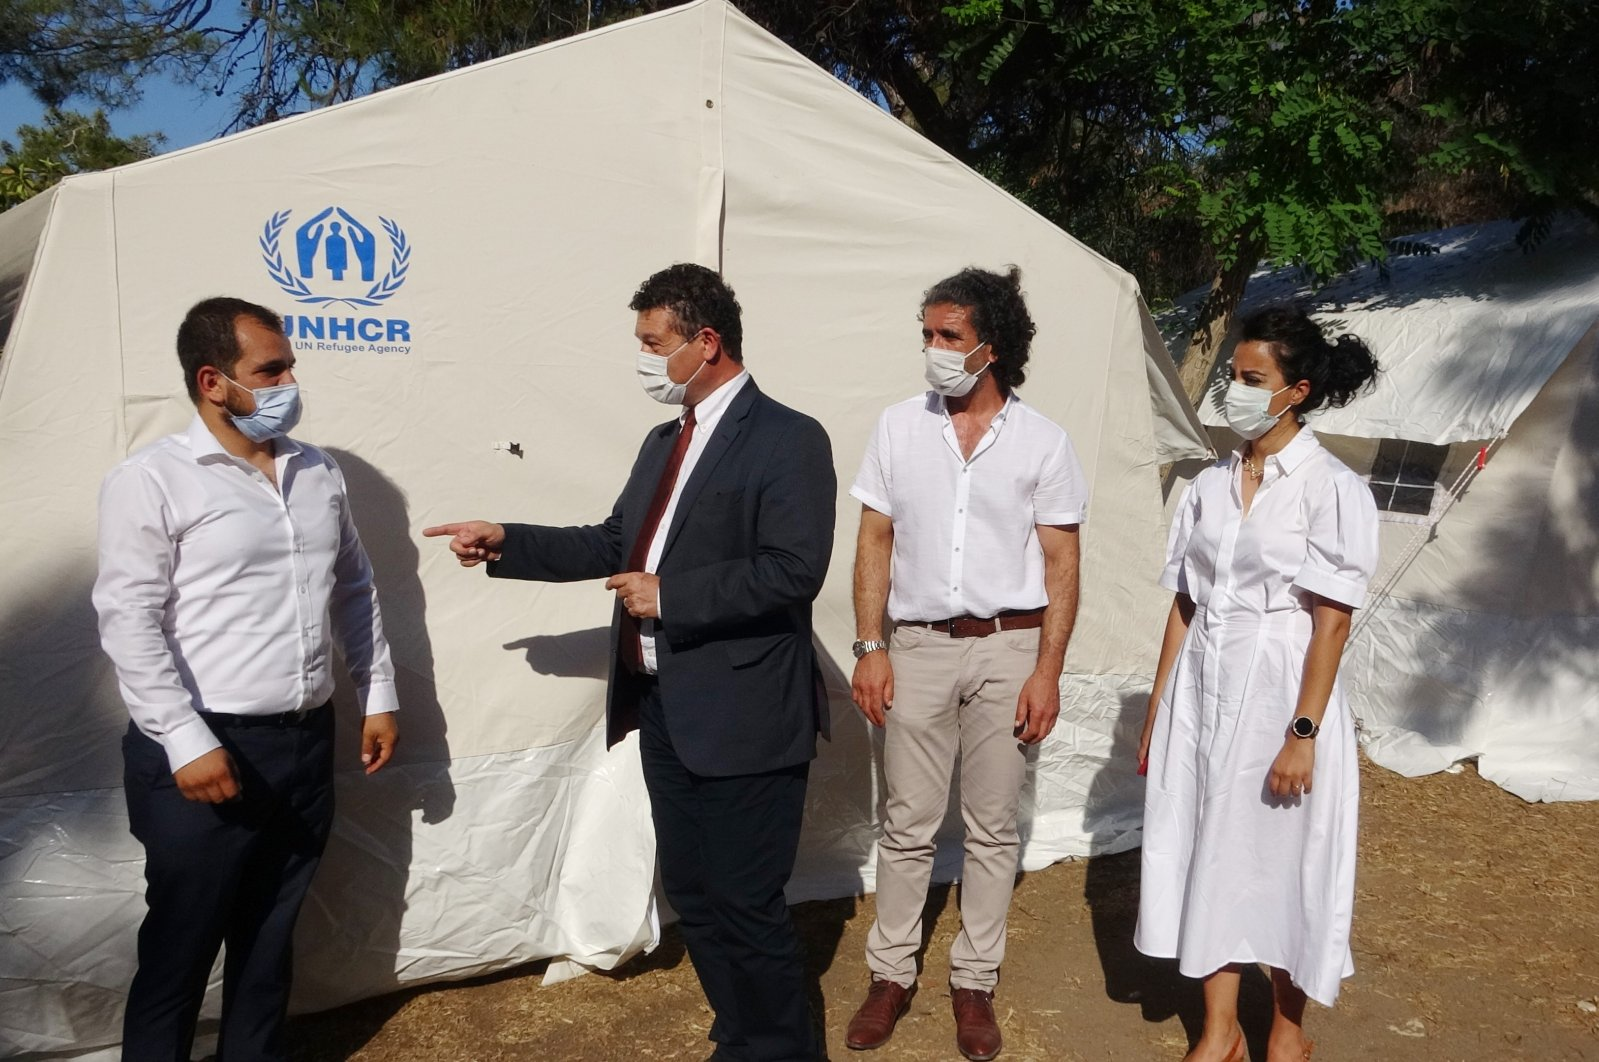 Philippe Leclerc, the representative of the U.N. High Commissioner for Refugees (UNHCR) in Turkey, is seen during a visit to southern Turkey's Mersin city, June 12, 2021. (IHA Photo)